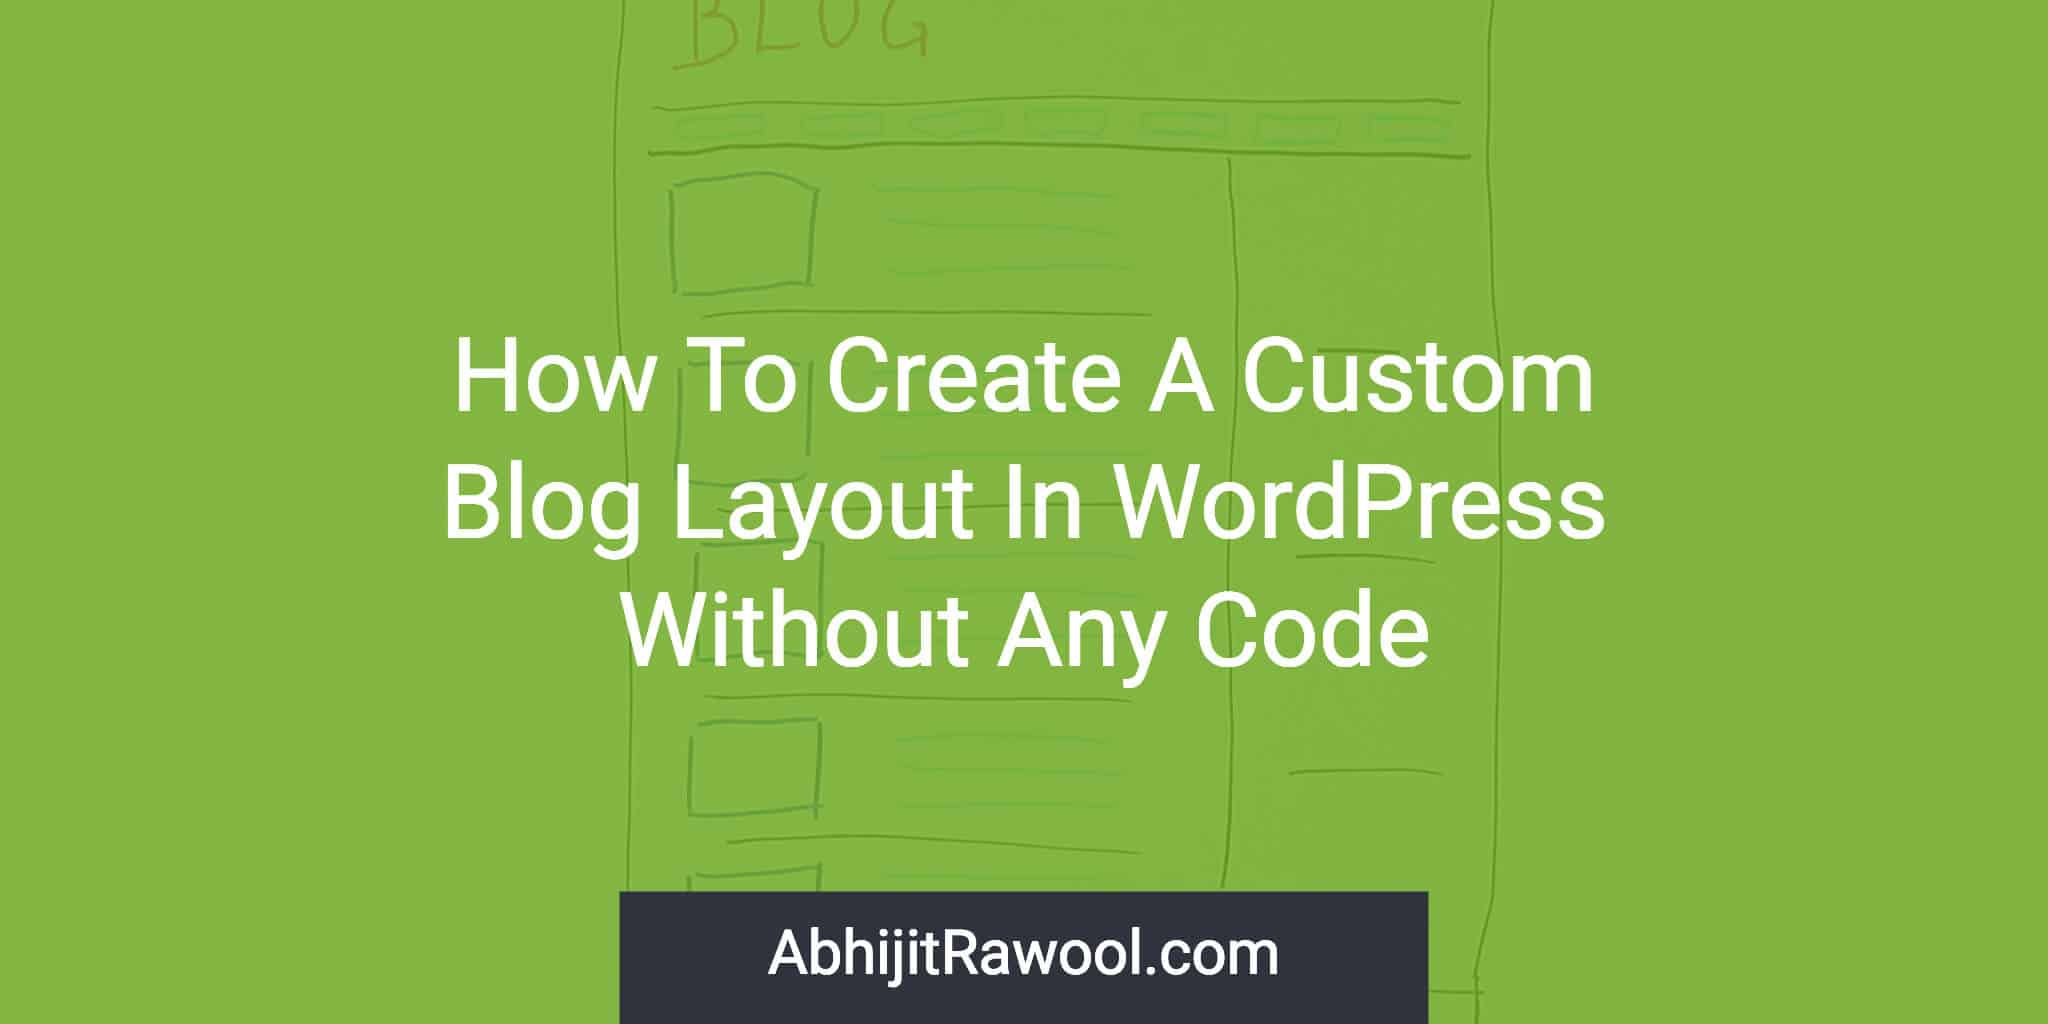 How to create a custom blog layout in wordpress without any code.